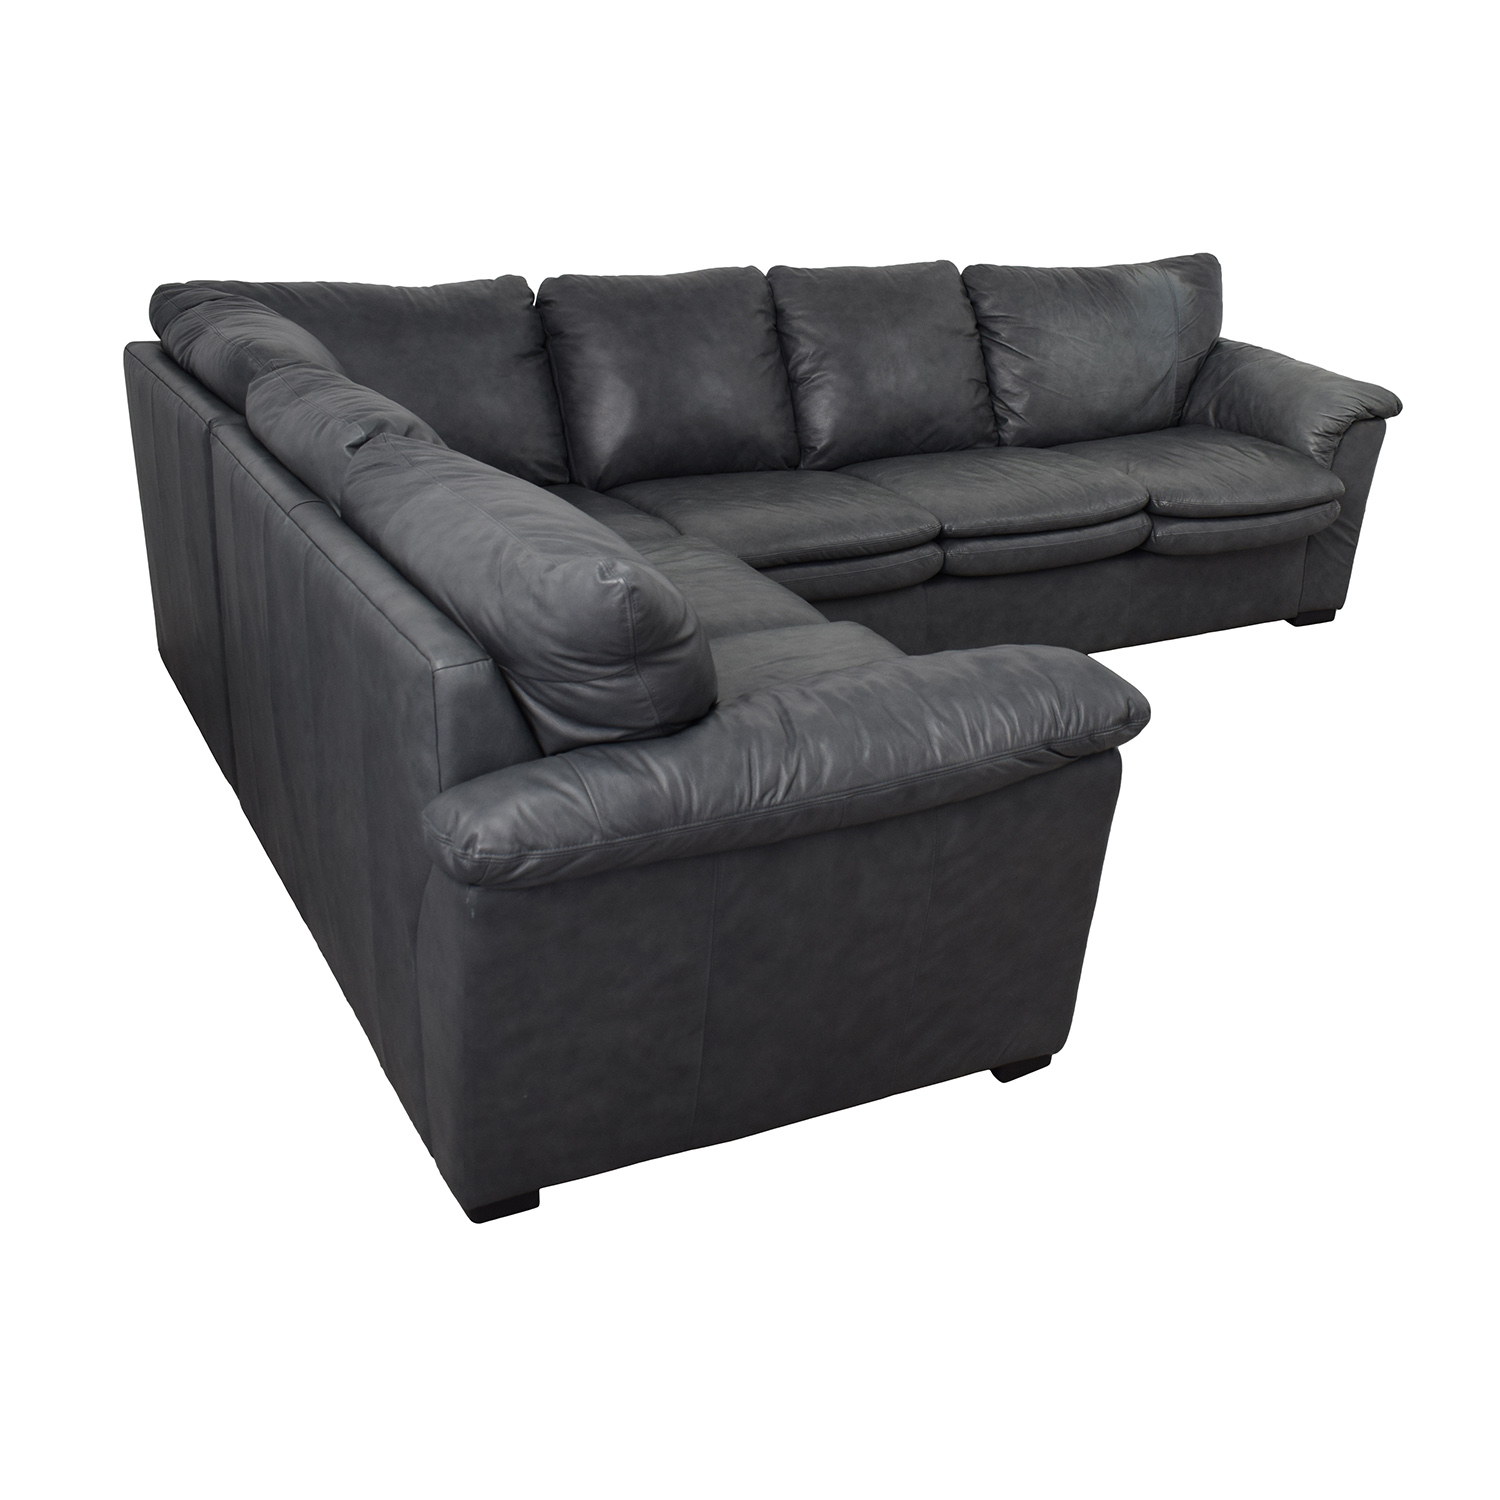 85 Off Jaymar Furniture Jaymar Furniture Charcoal